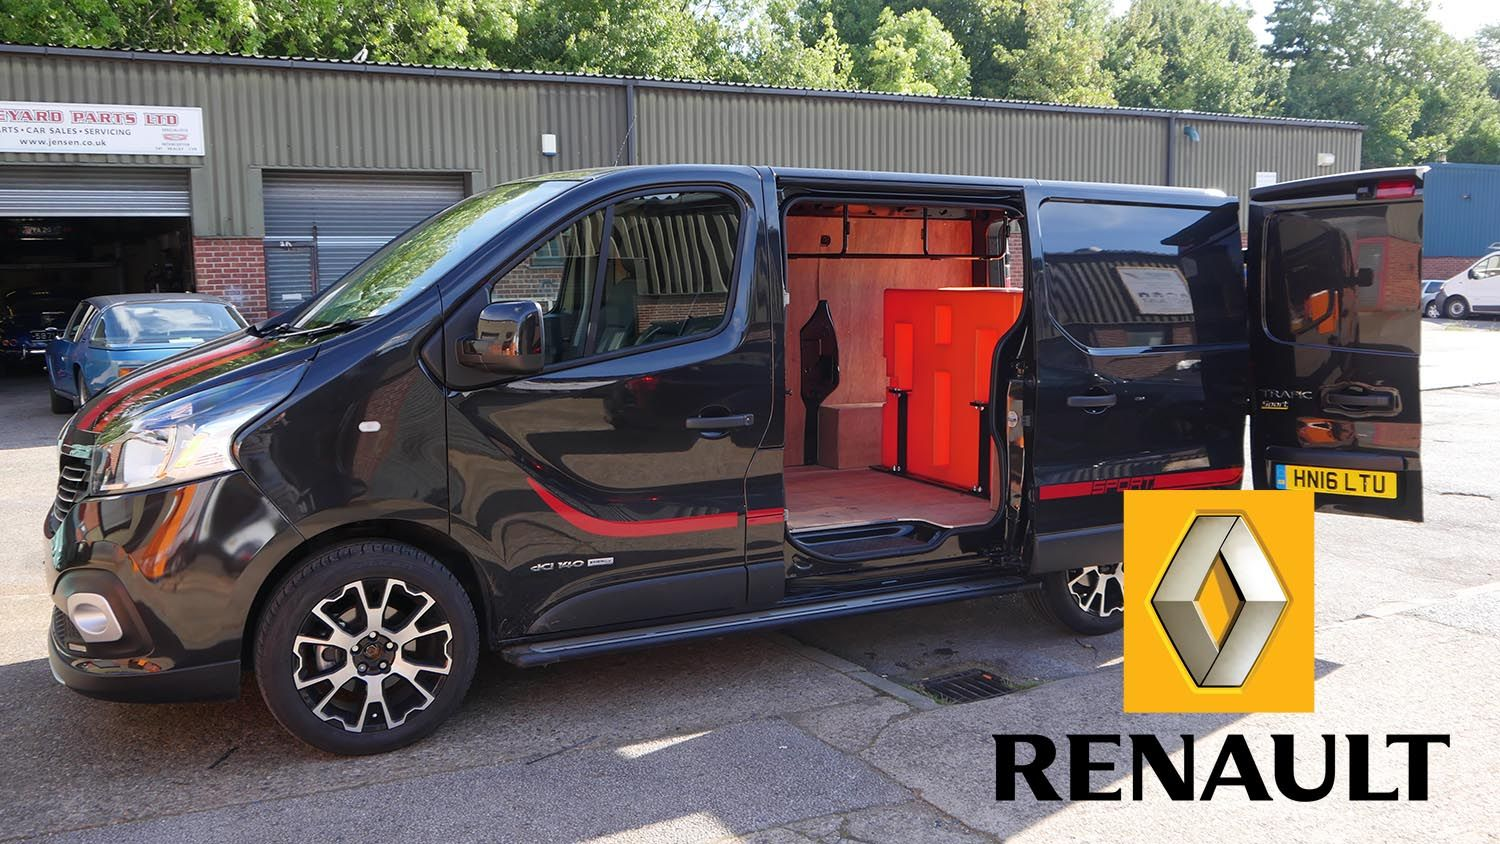 Renault - Window Cleaning Van Systems